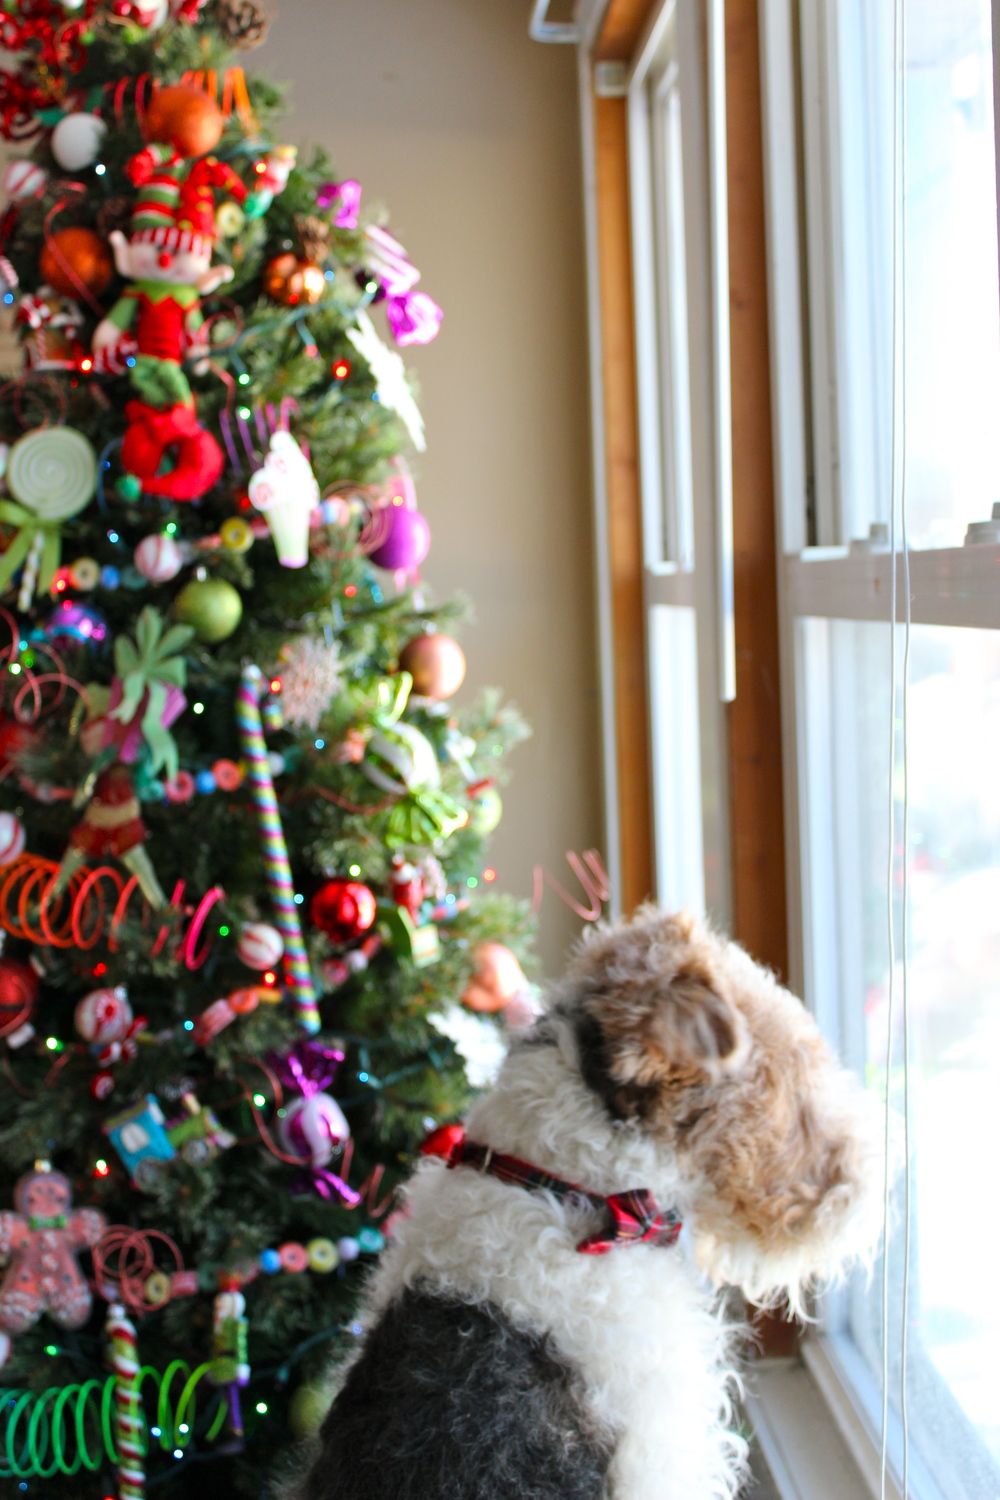 Meet my well-placed Christmas tree and my youngest fur baby, Dash.